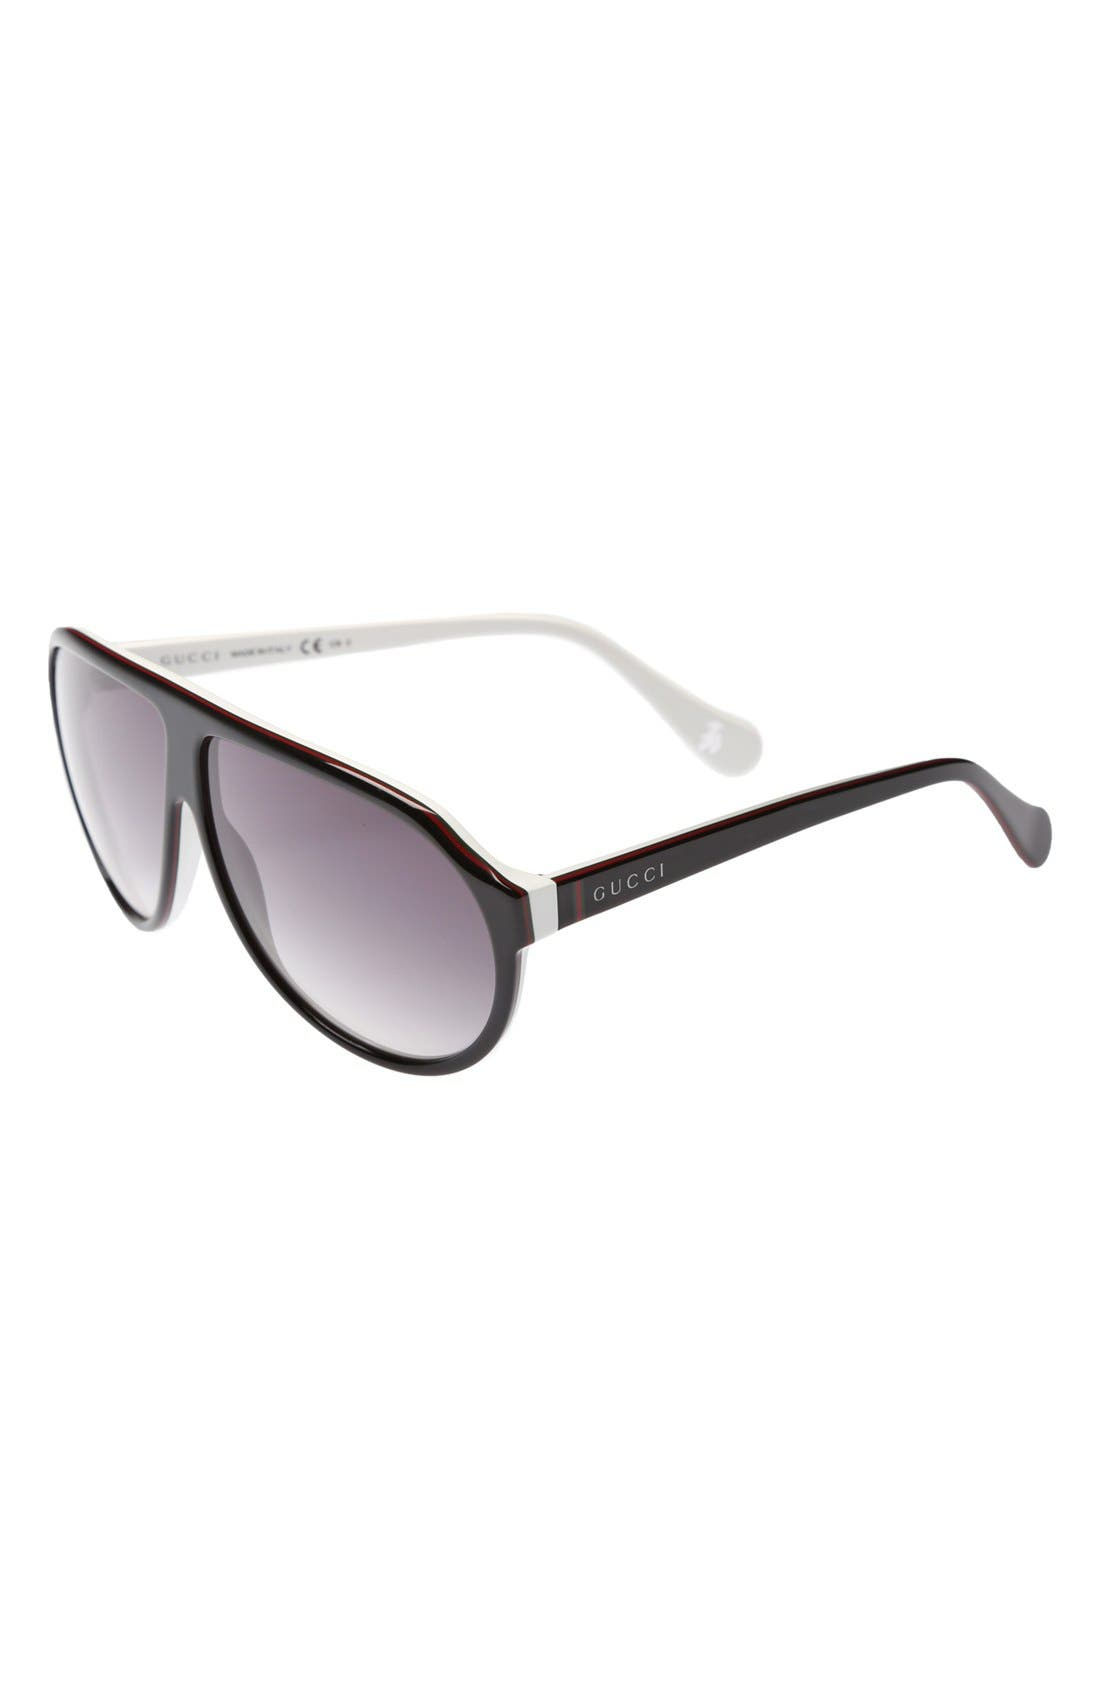 Alternate Image 1 Selected - Gucci Aviator Sunglasses (Kids)